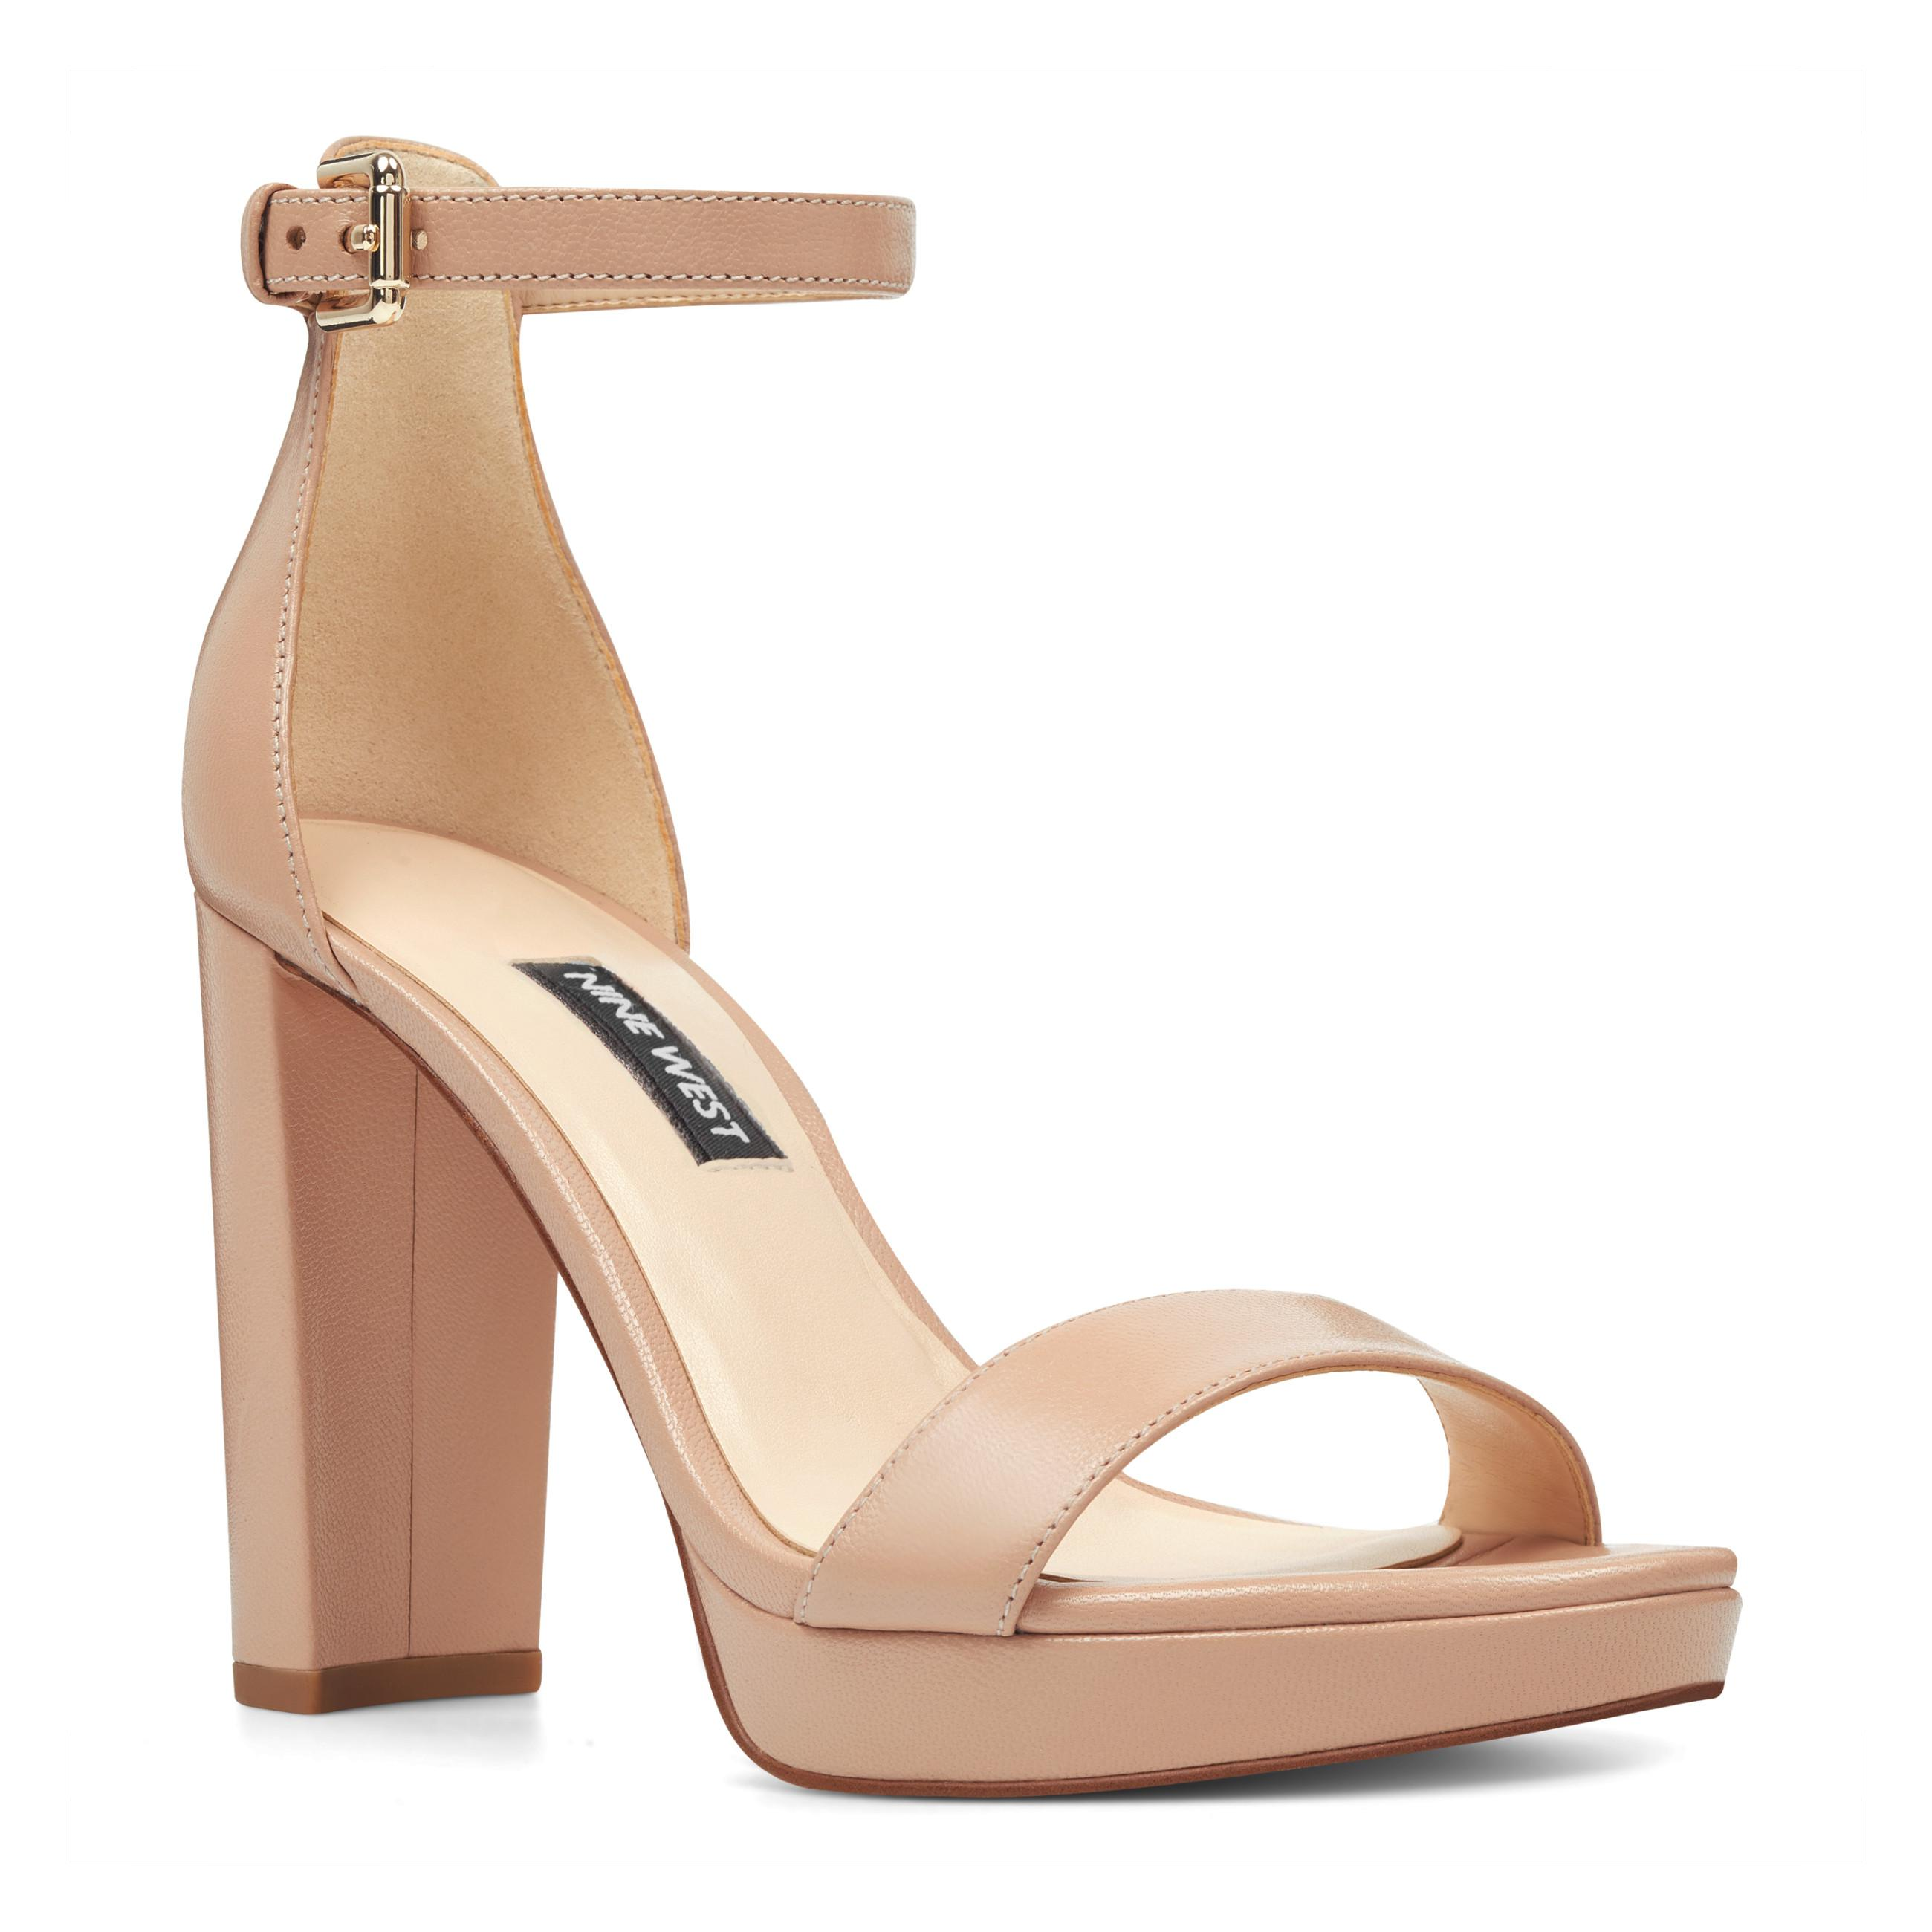 abbbaf42734 Nine West - Natural Dempsey Platform Sandals - Lyst. View fullscreen